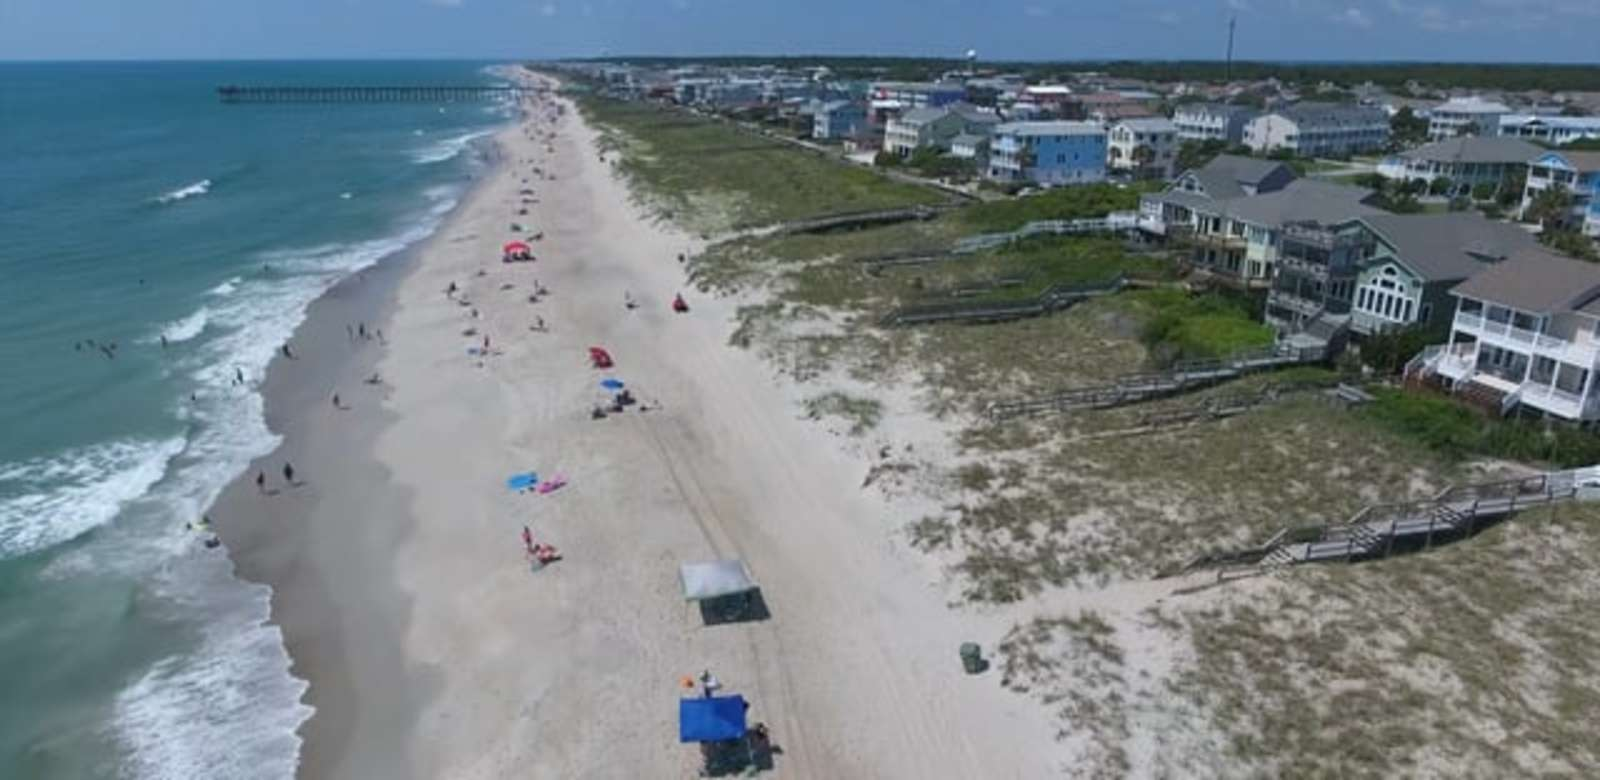 Kure Beach Destination Video